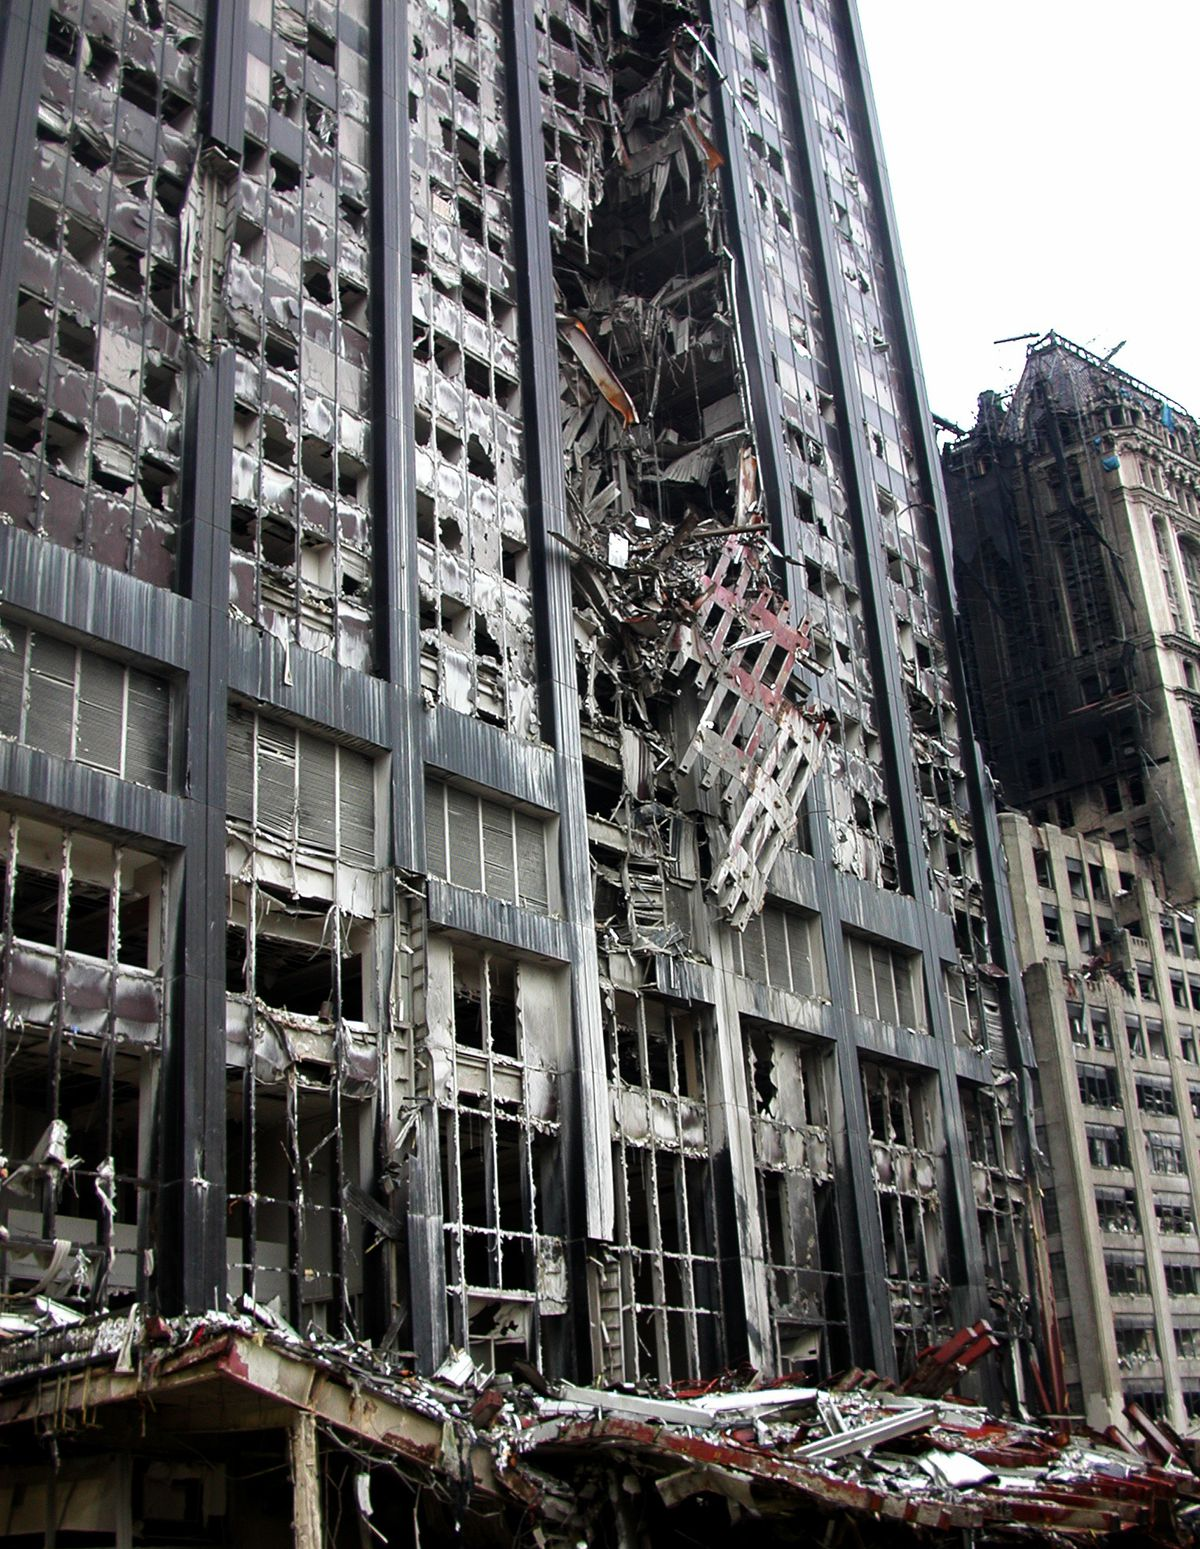 Ruin of a building after 9/11